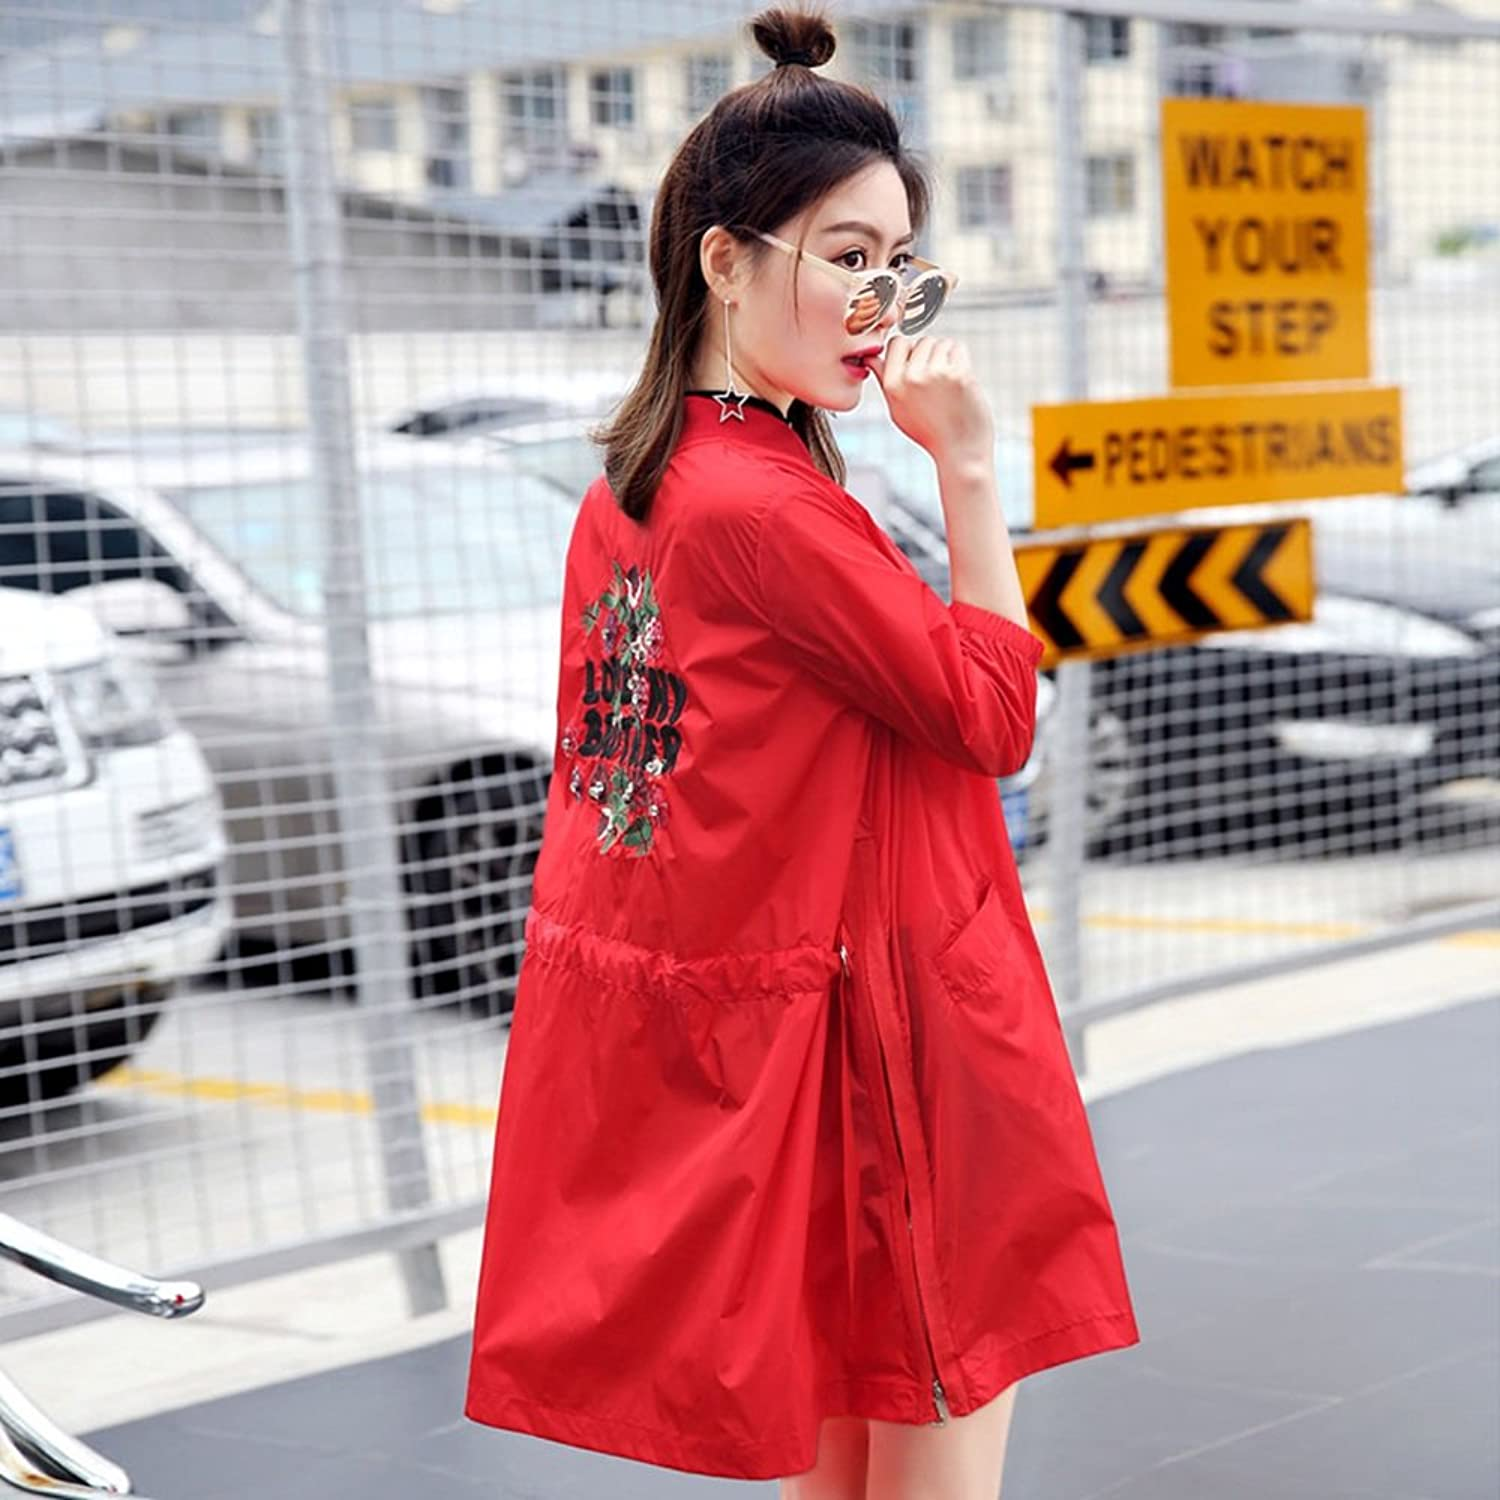 XRXY Summer Seven Sleeves Long Section Sun Predection Clothing Female Embroidery Loose Cardigan Go Out Thin Windbreaker Office Air Conditioning Shawl (3 colors Available)